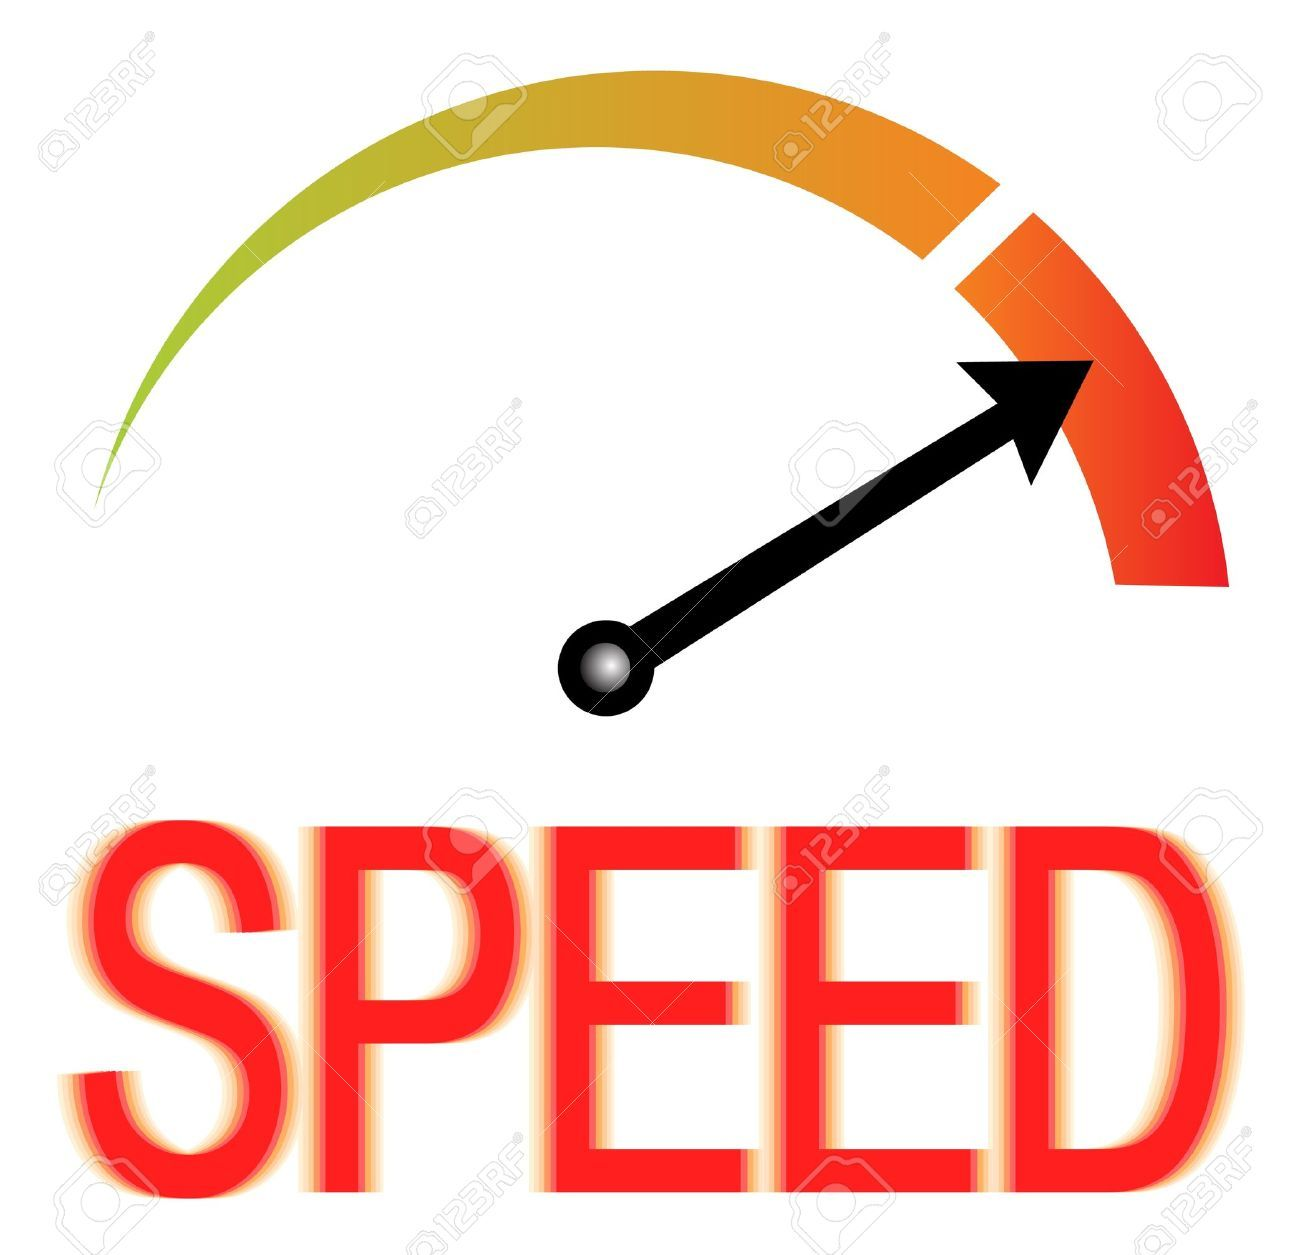 Speed Is Vector While Velocity Is Considered As Scalar Quantity Fact Or Bluff Internet Plans National School Learning Time